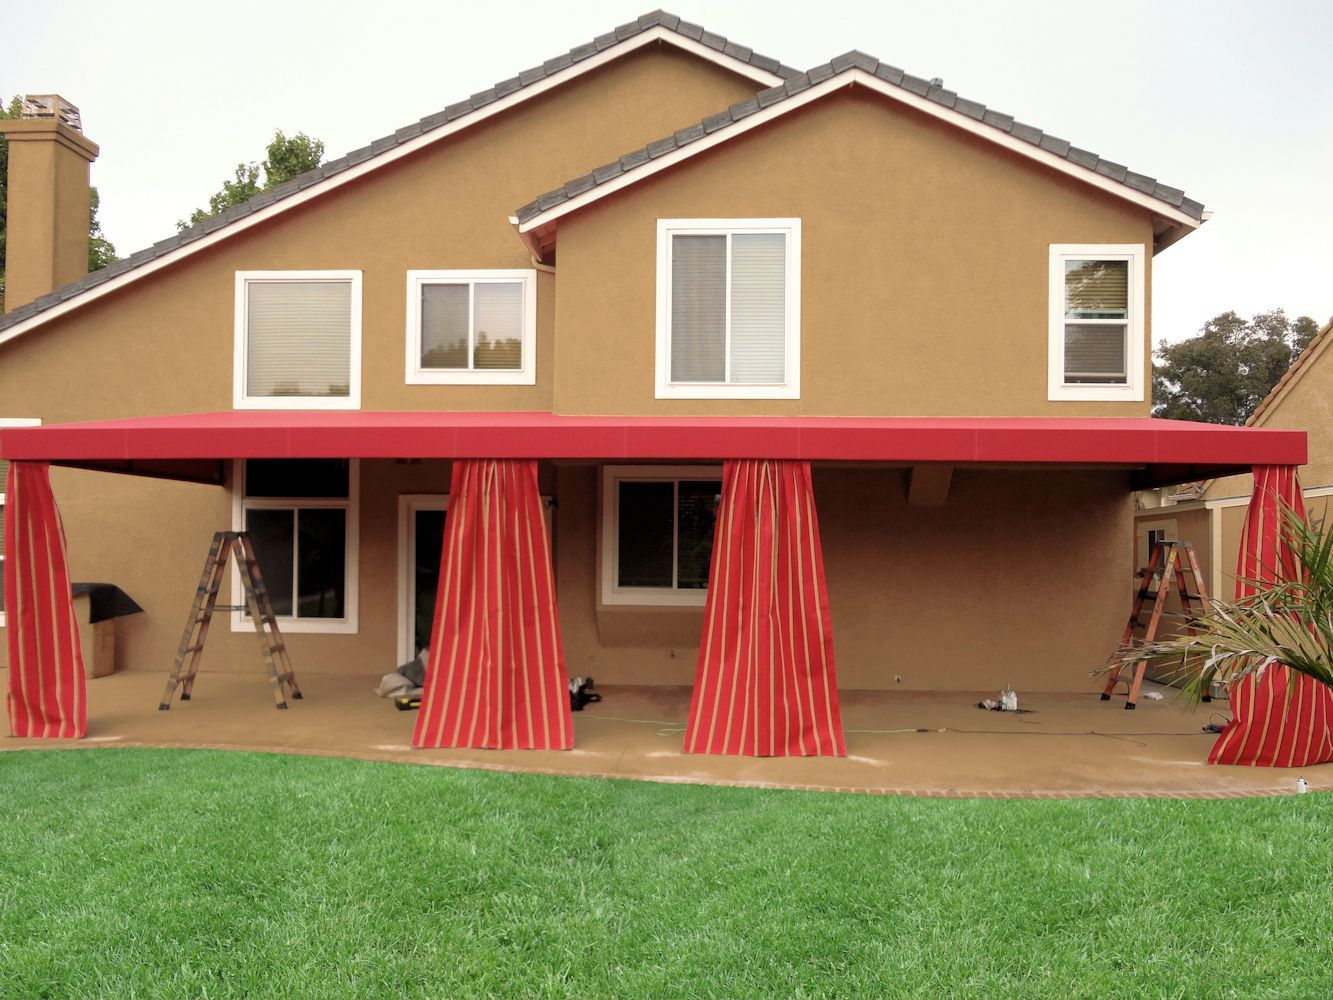 Patio Cover With Decorative Drapes